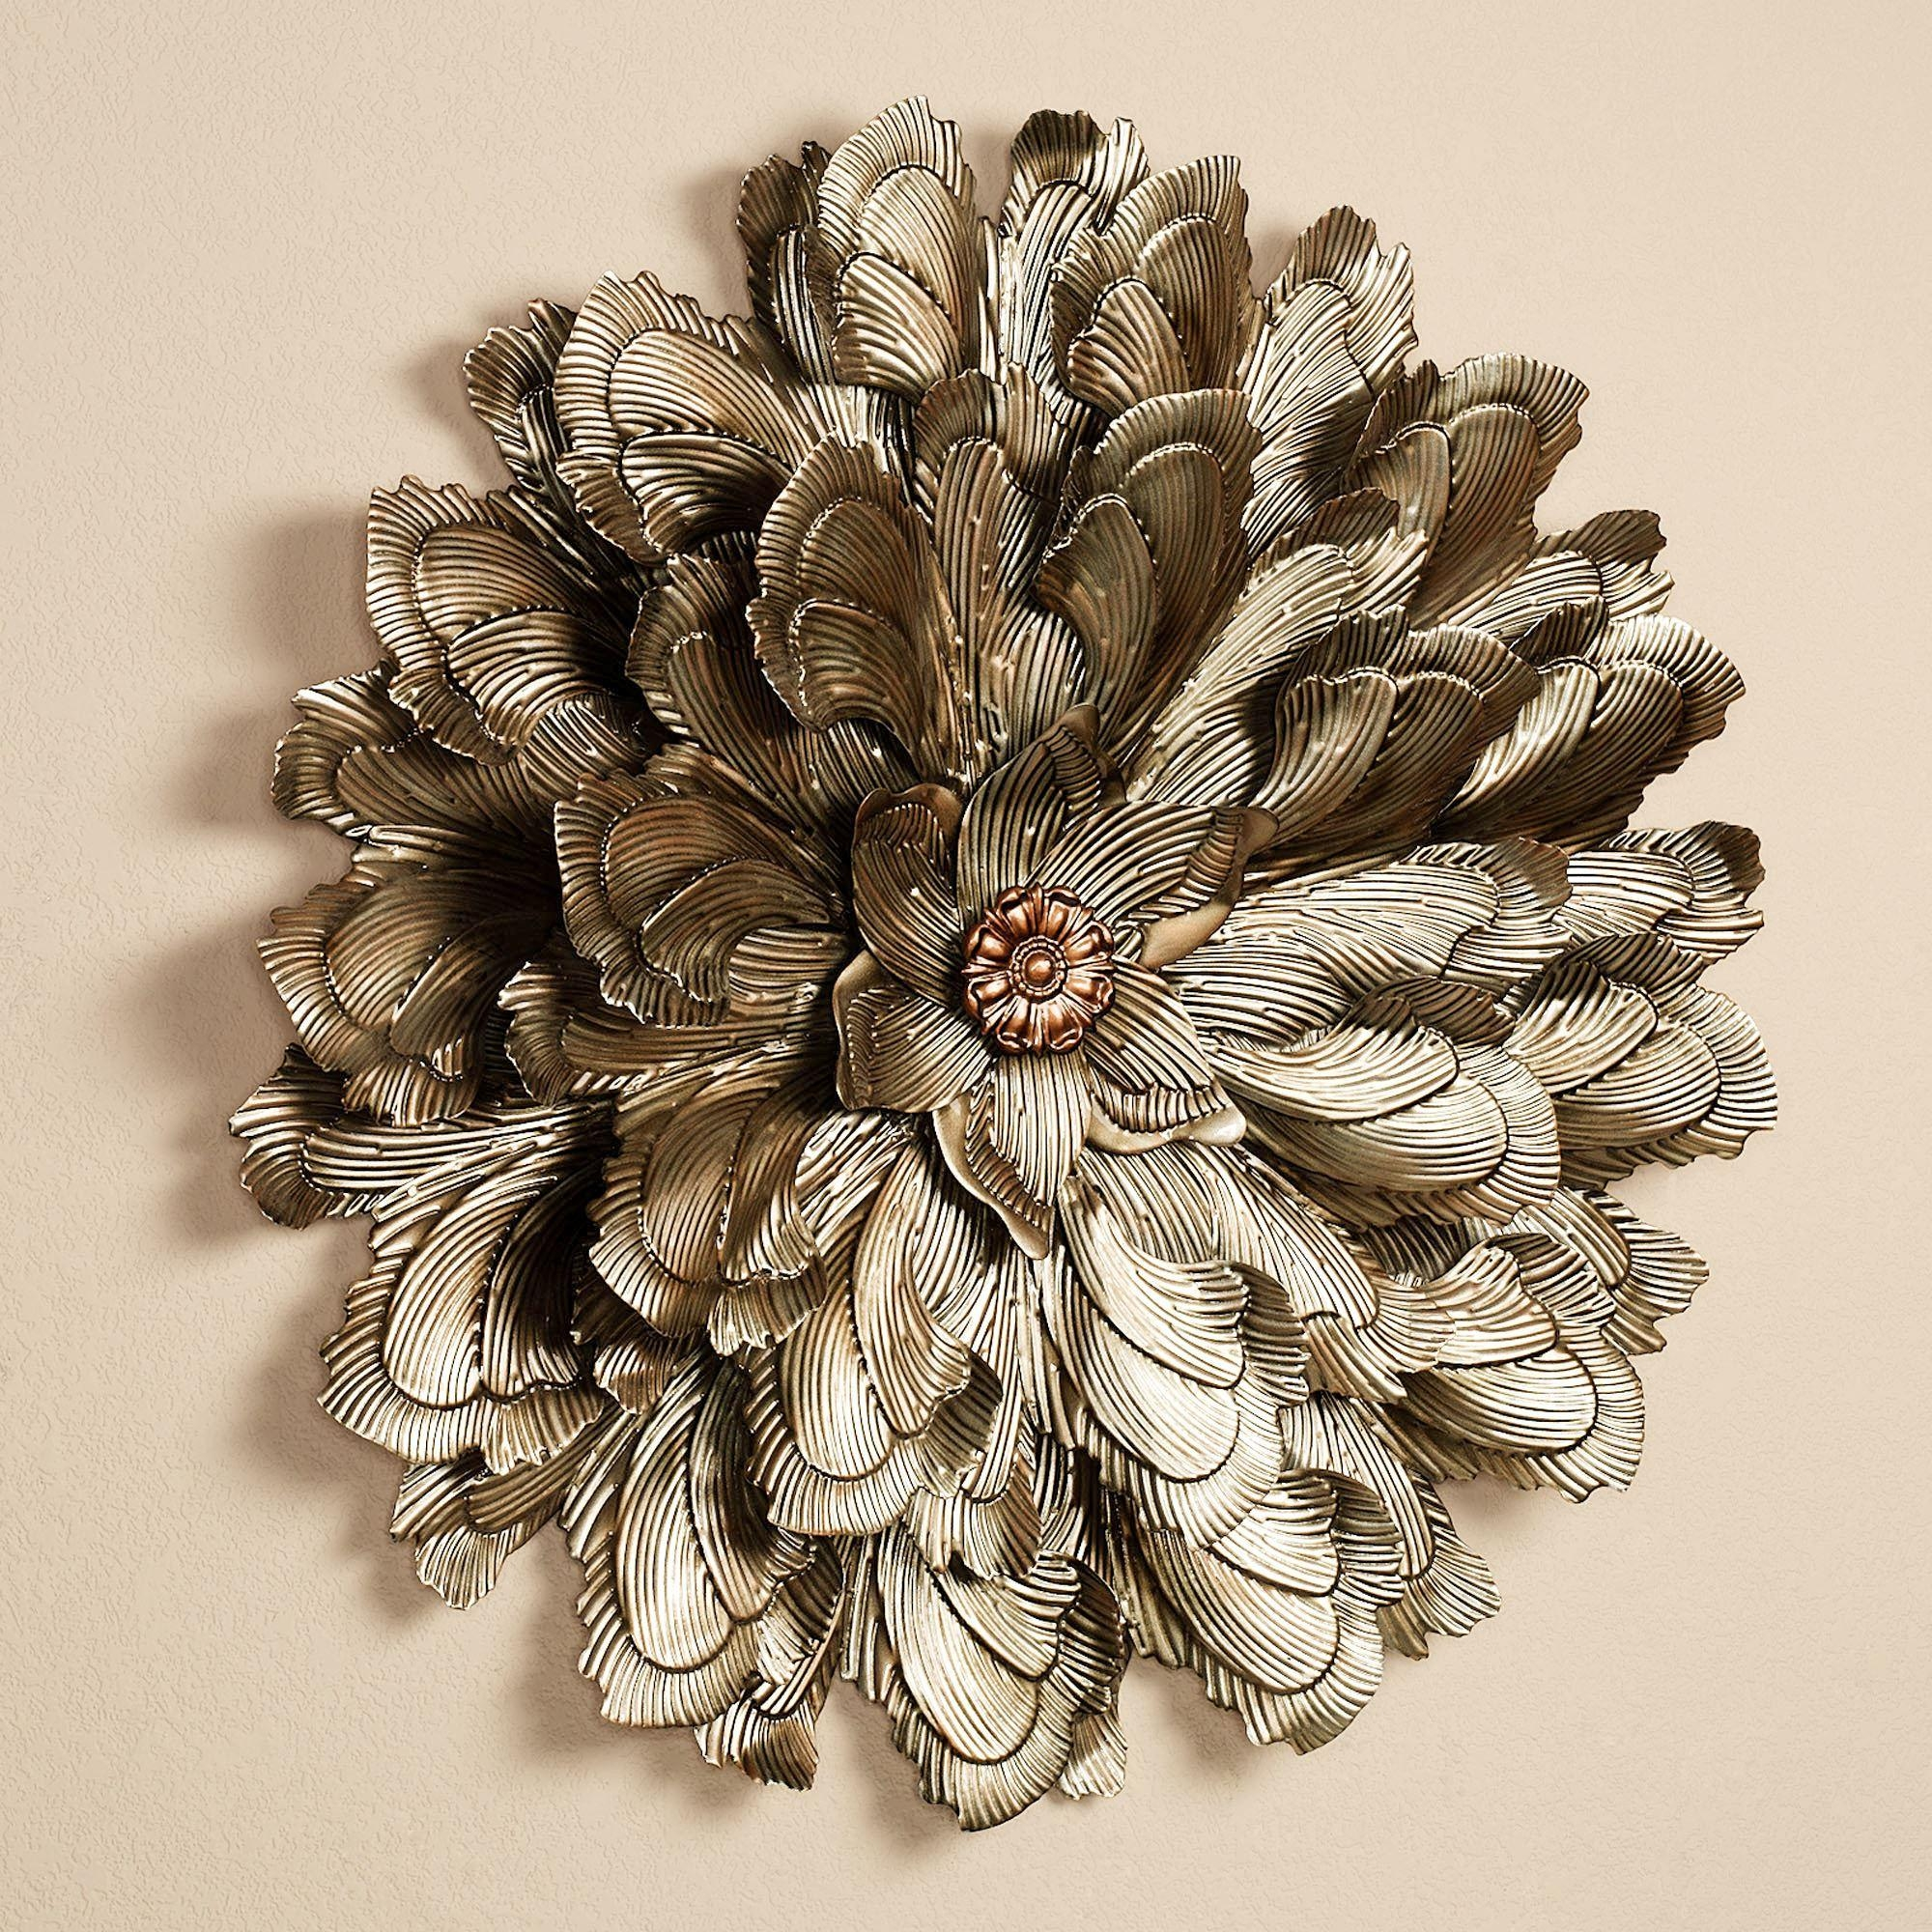 Delicate Flower Blossom Metal Wall Sculpture Intended For Touch Of Class Metal Wall Art (View 13 of 20)